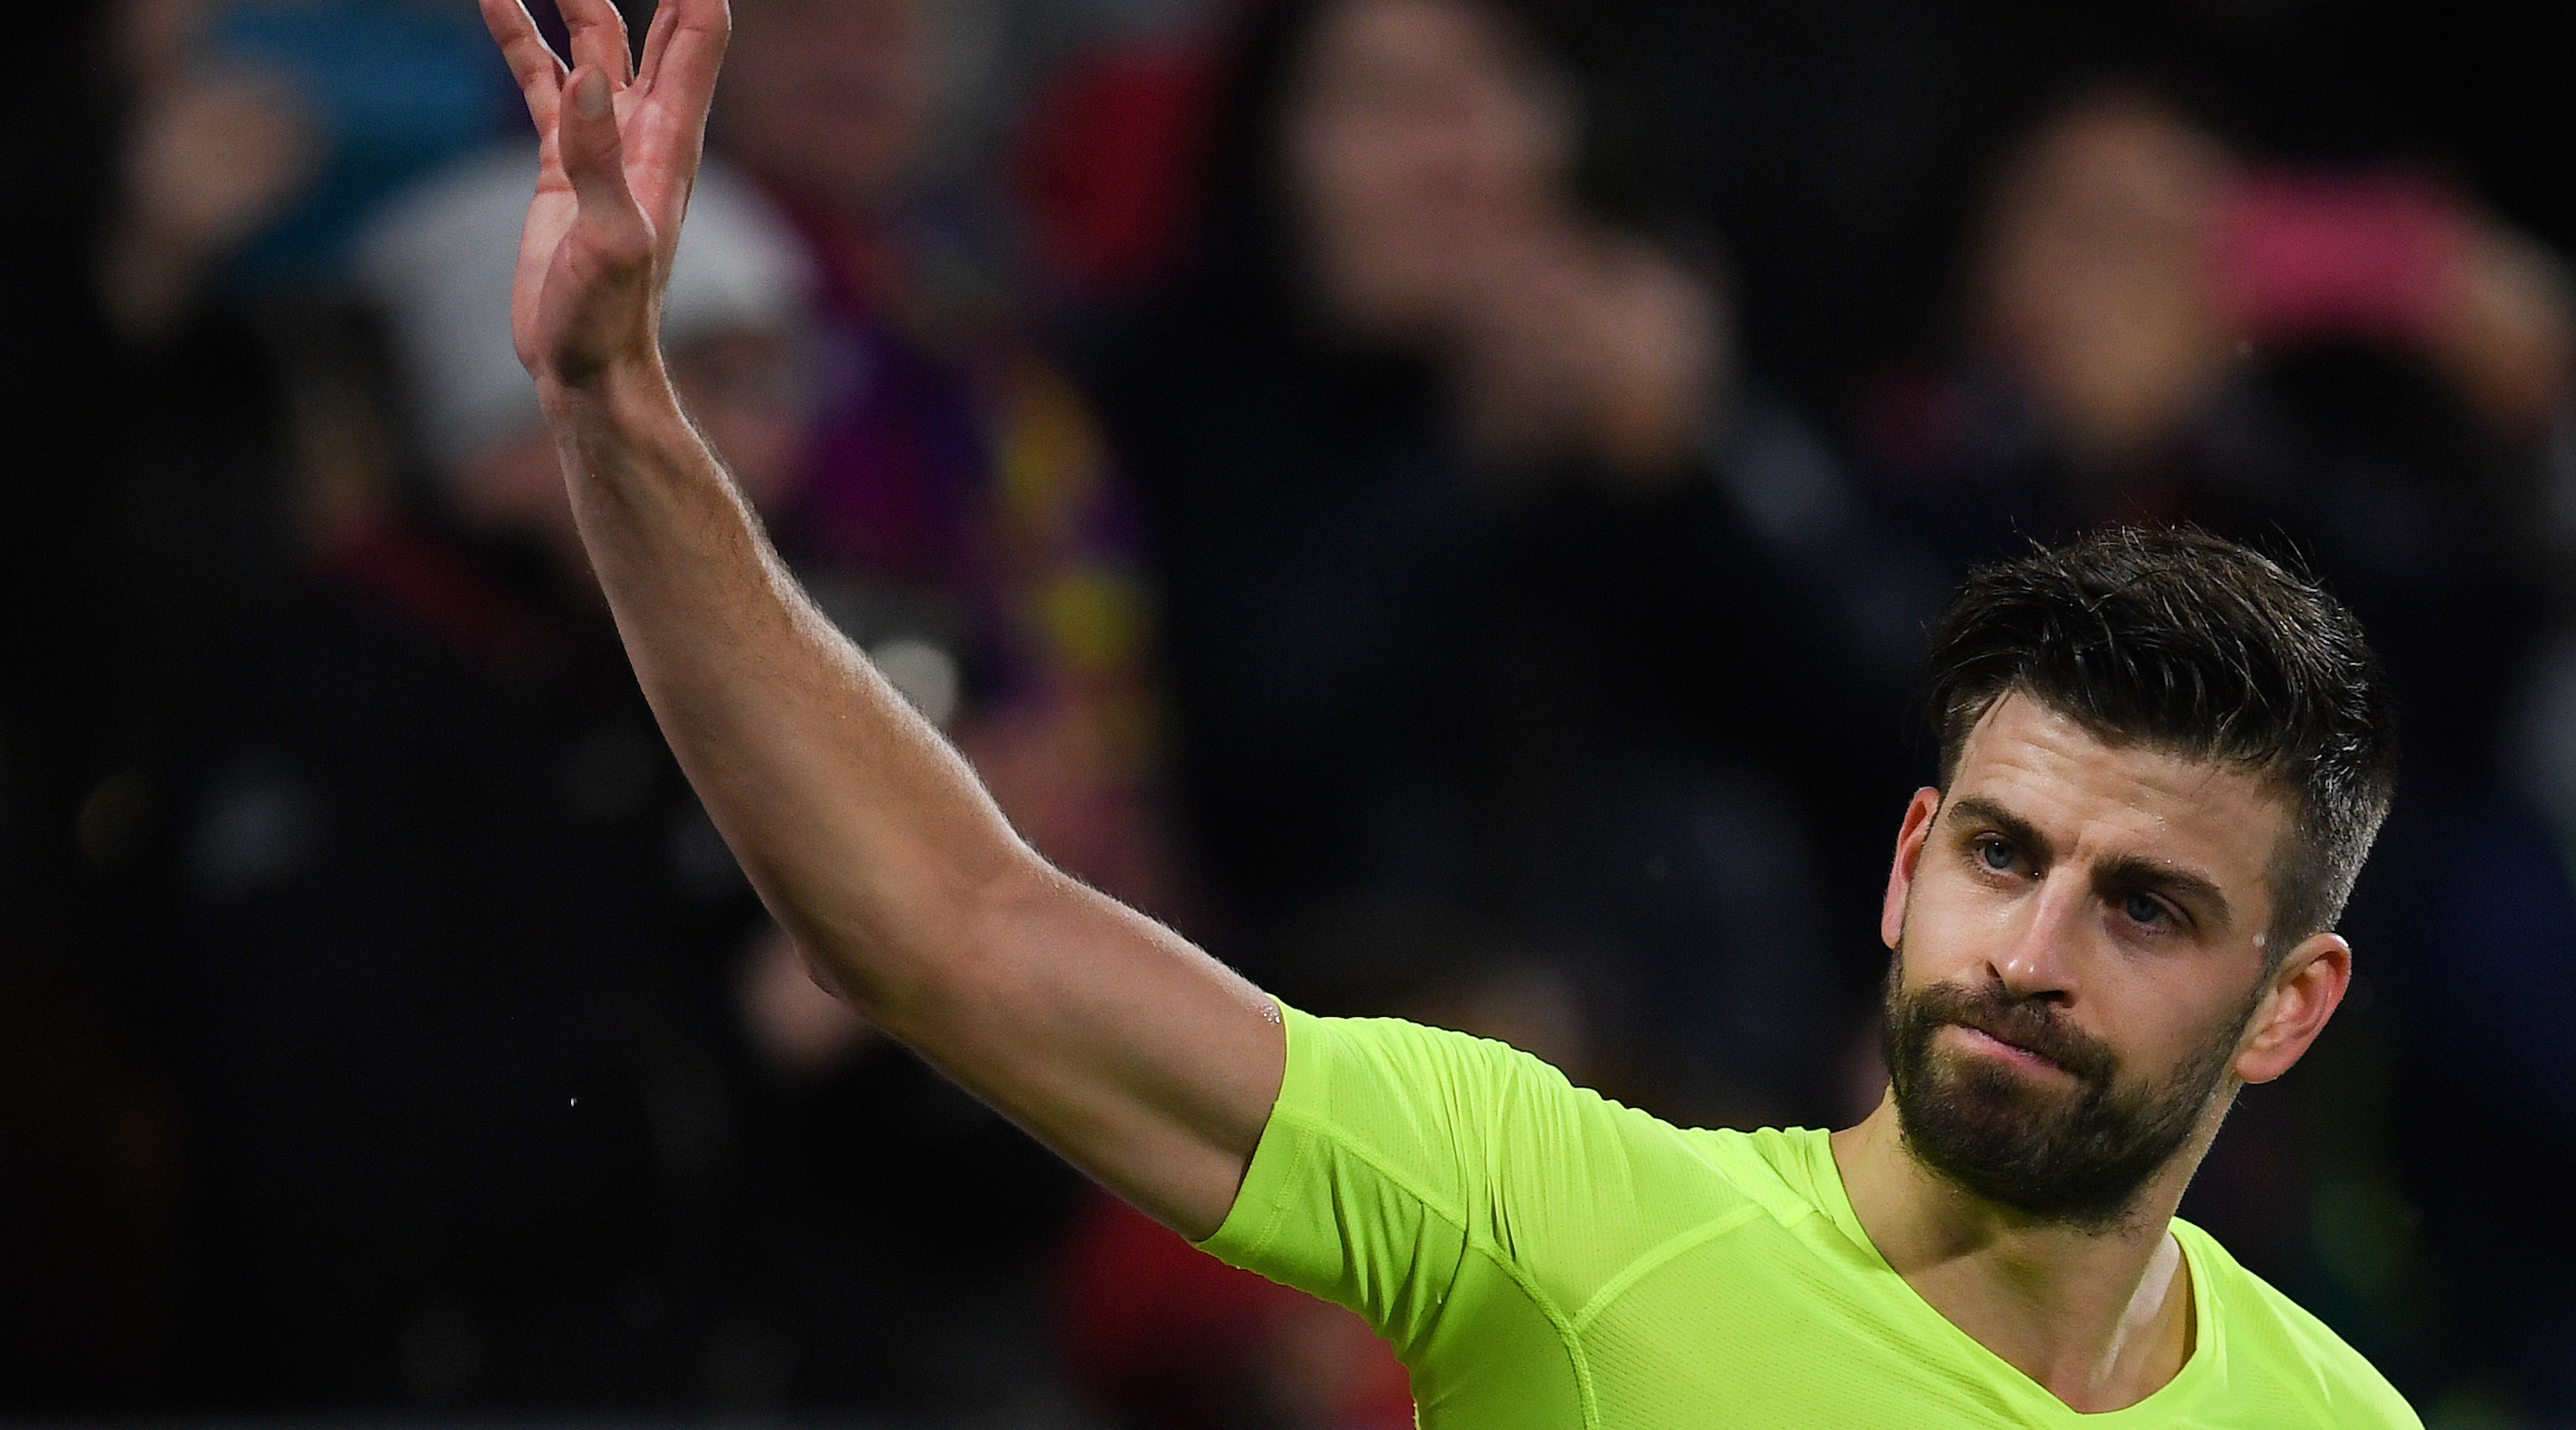 GIRONA, SPAIN - JANUARY 27: Gerard Pique of FC Barcelona celebrates at the endo of the La Liga match between Girona FC and FC Barcelona at Montilivi Stadium on January 27, 2019 in Girona, Spain. (Photo by David Ramos/Getty Images)